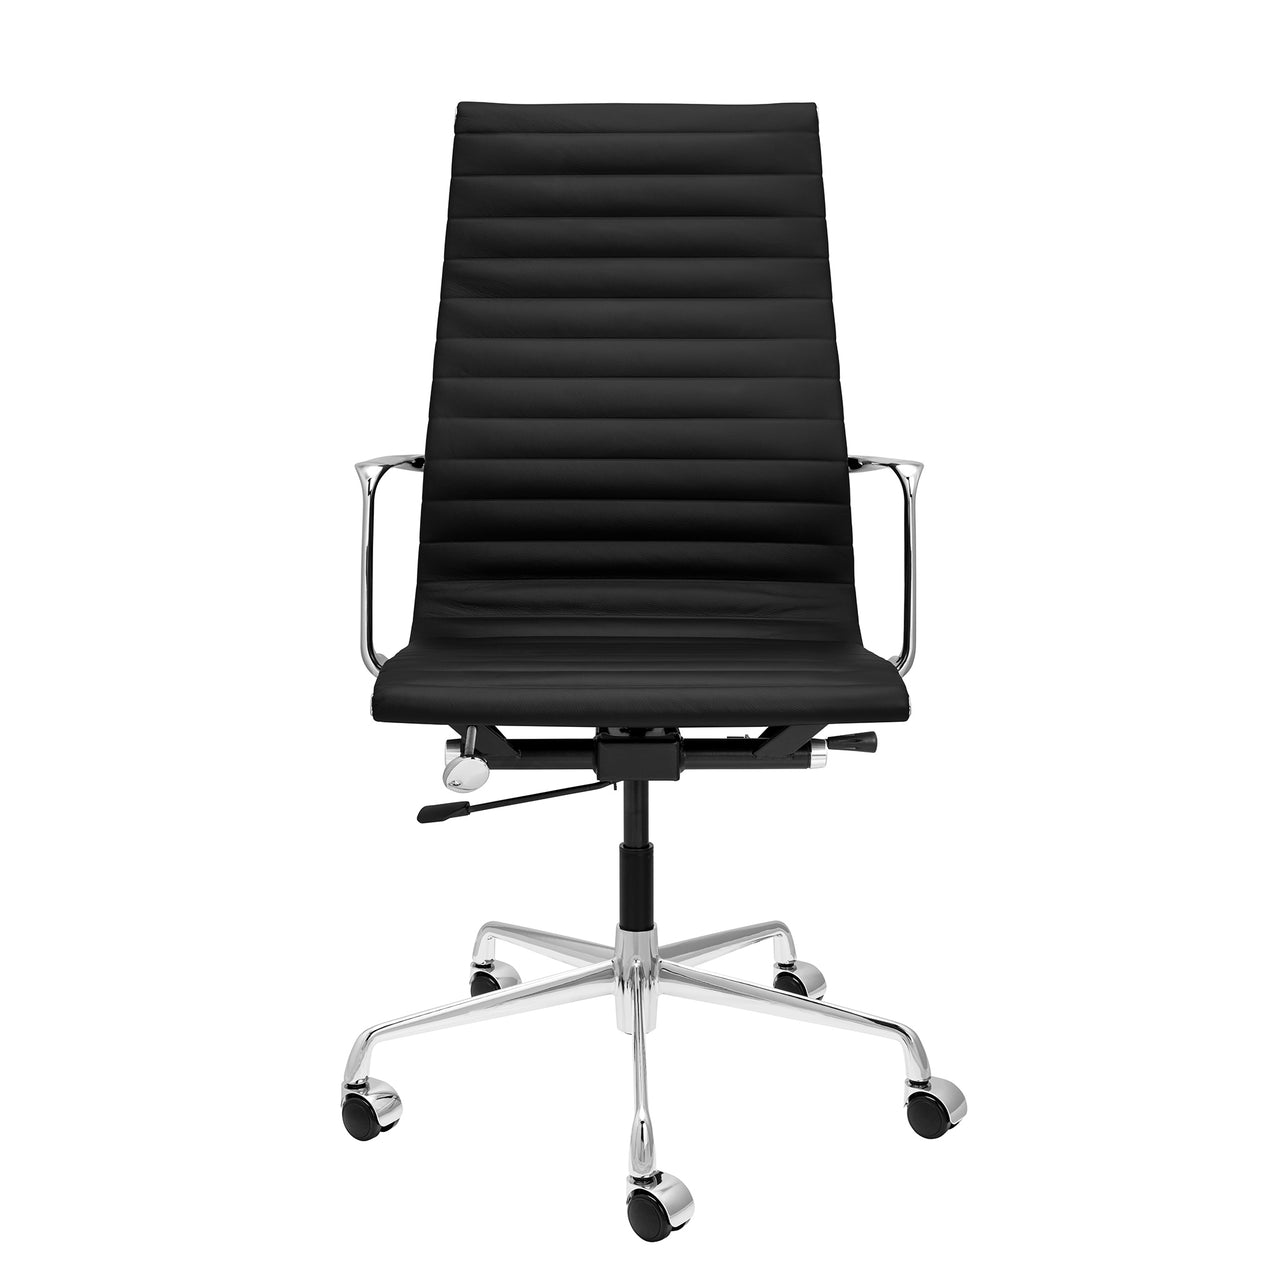 SOHO Pro Tall Back Ribbed Management Chair (Black Italian Leather)